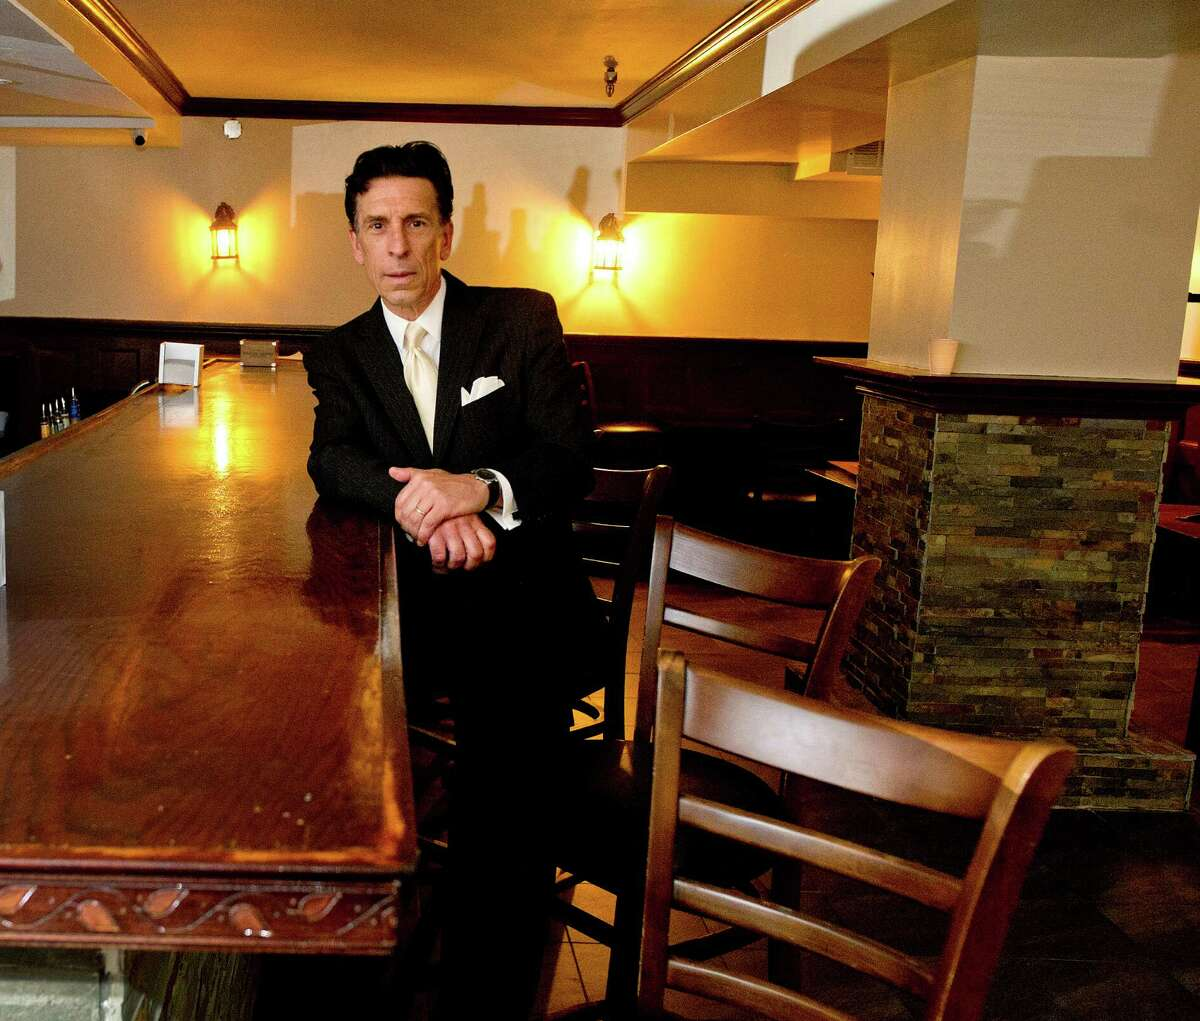 Steve Matsis, Senior Managing Director for Pyramid Restaurant Group, poses for a photo at Salsa Lounge and Restaurant, the business for sale at 84 West Park Place in Stamford, Conn., on Tuesday, September 9, 2014.